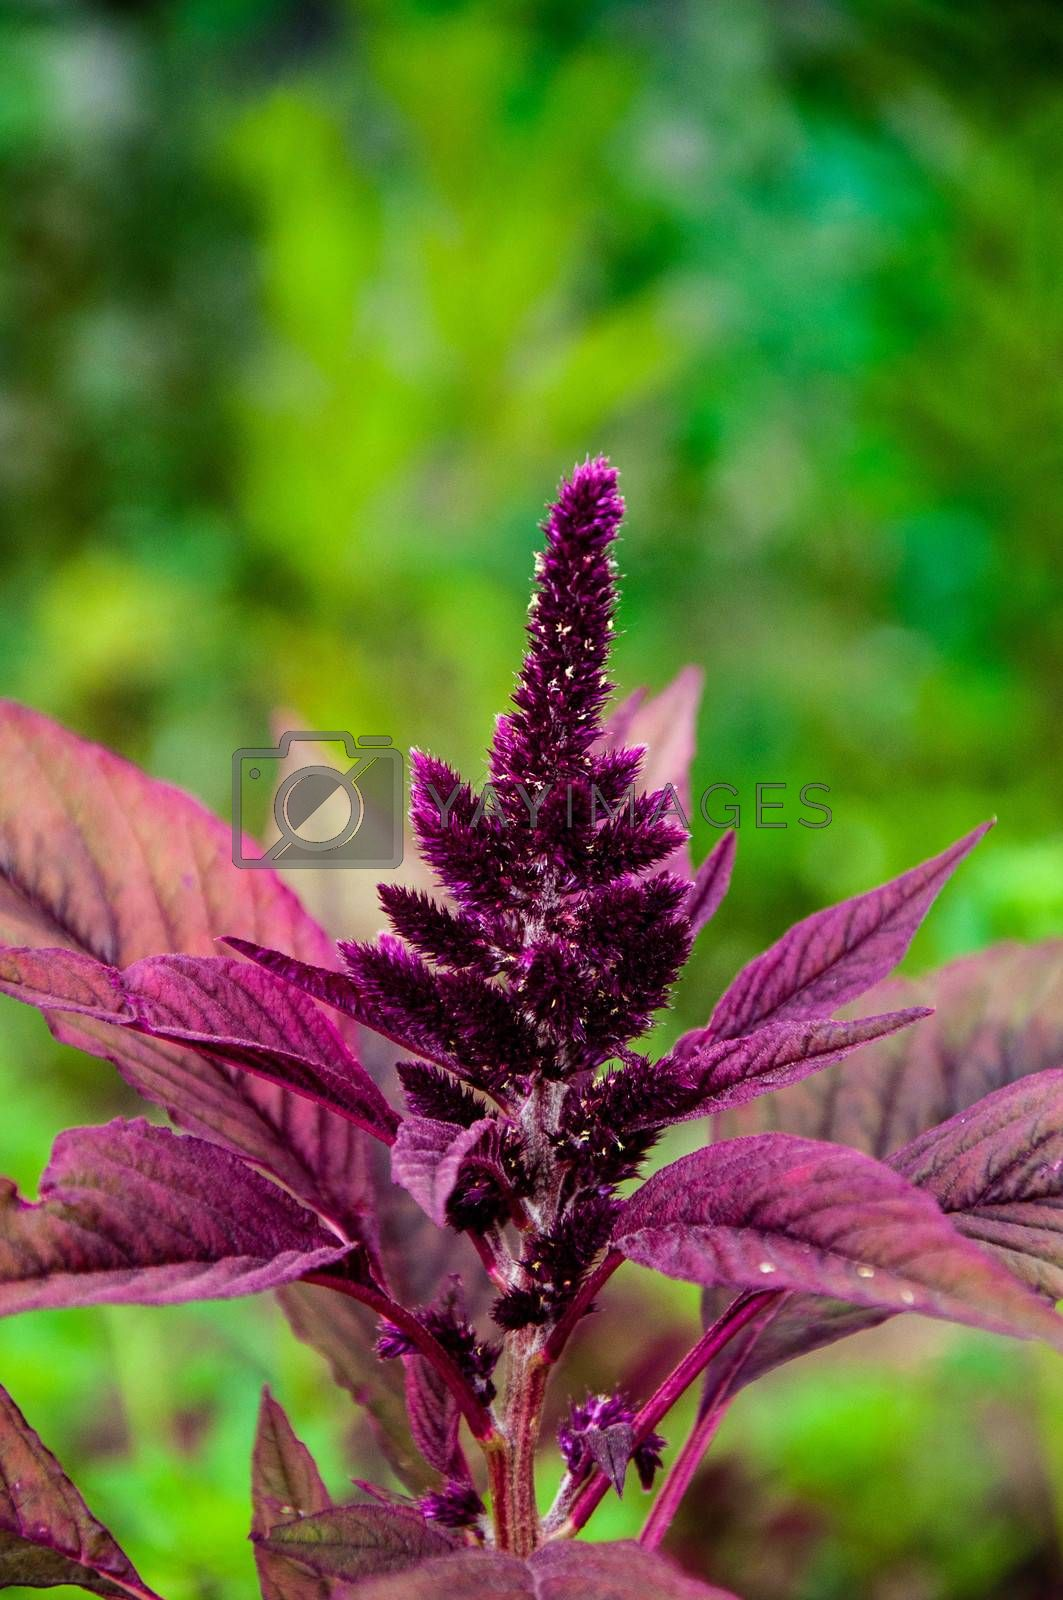 Amaranth has anticancer properties plant, it is called a miracle plant 21 century